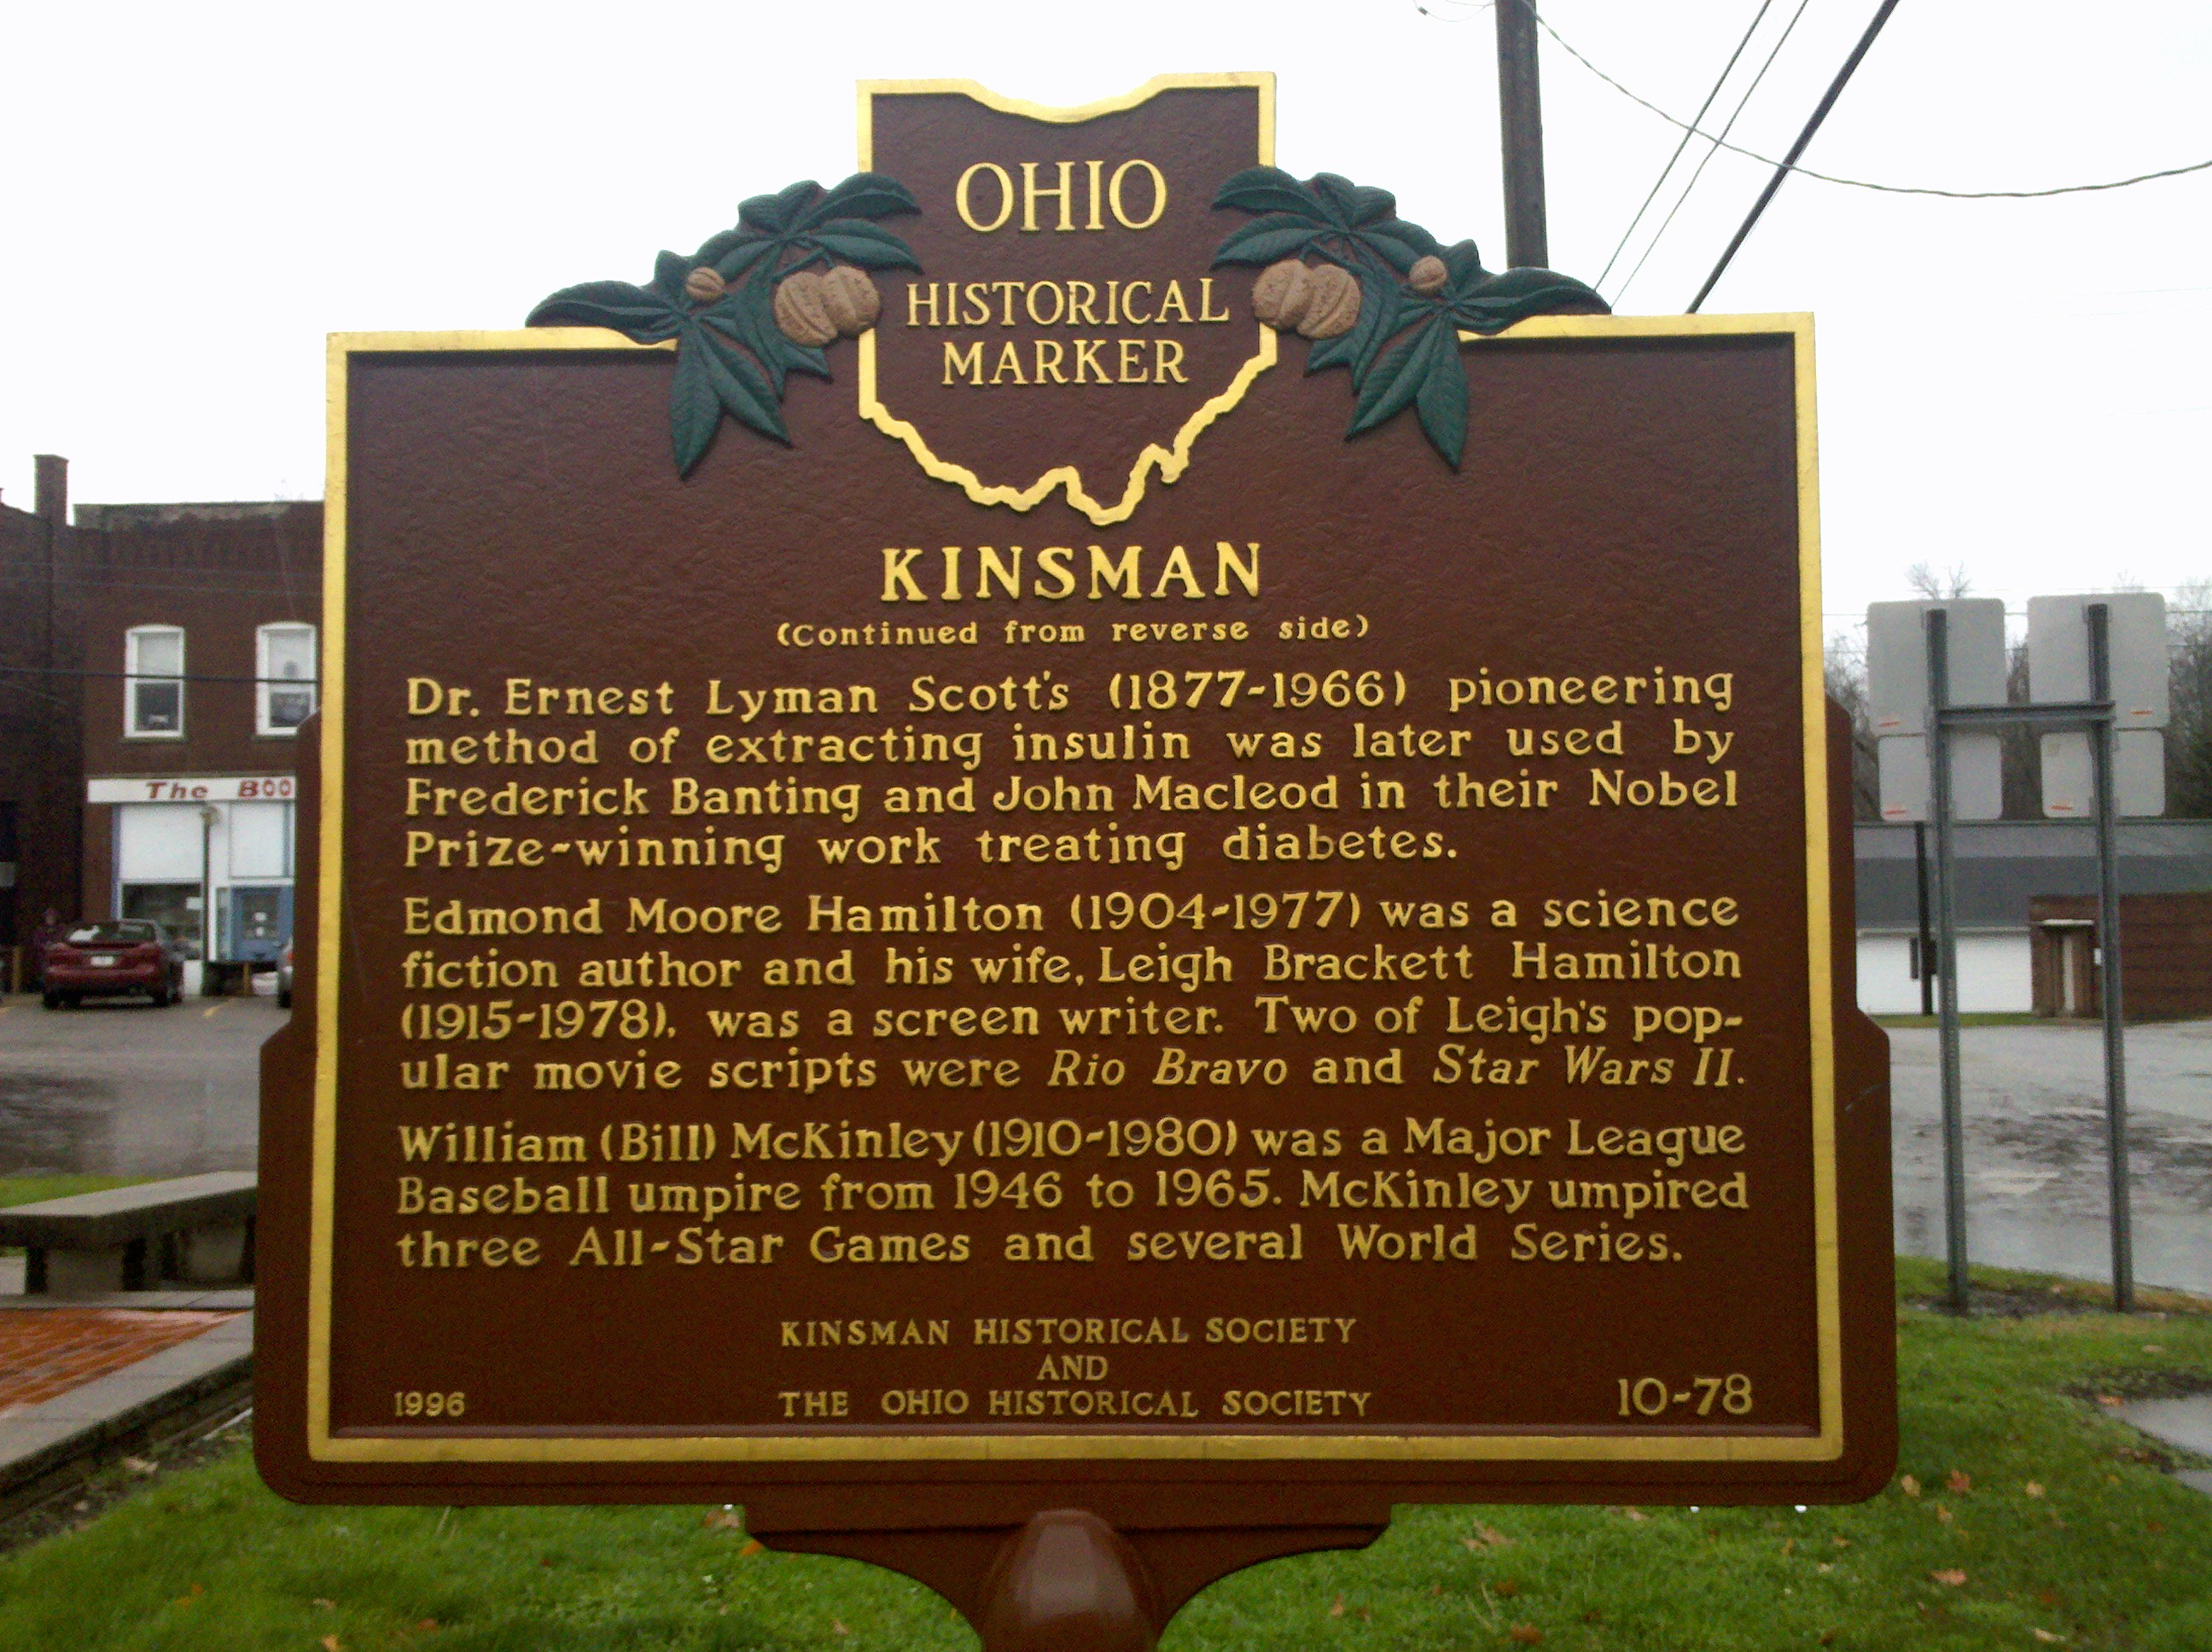 Ohio Historical Marker 10-78